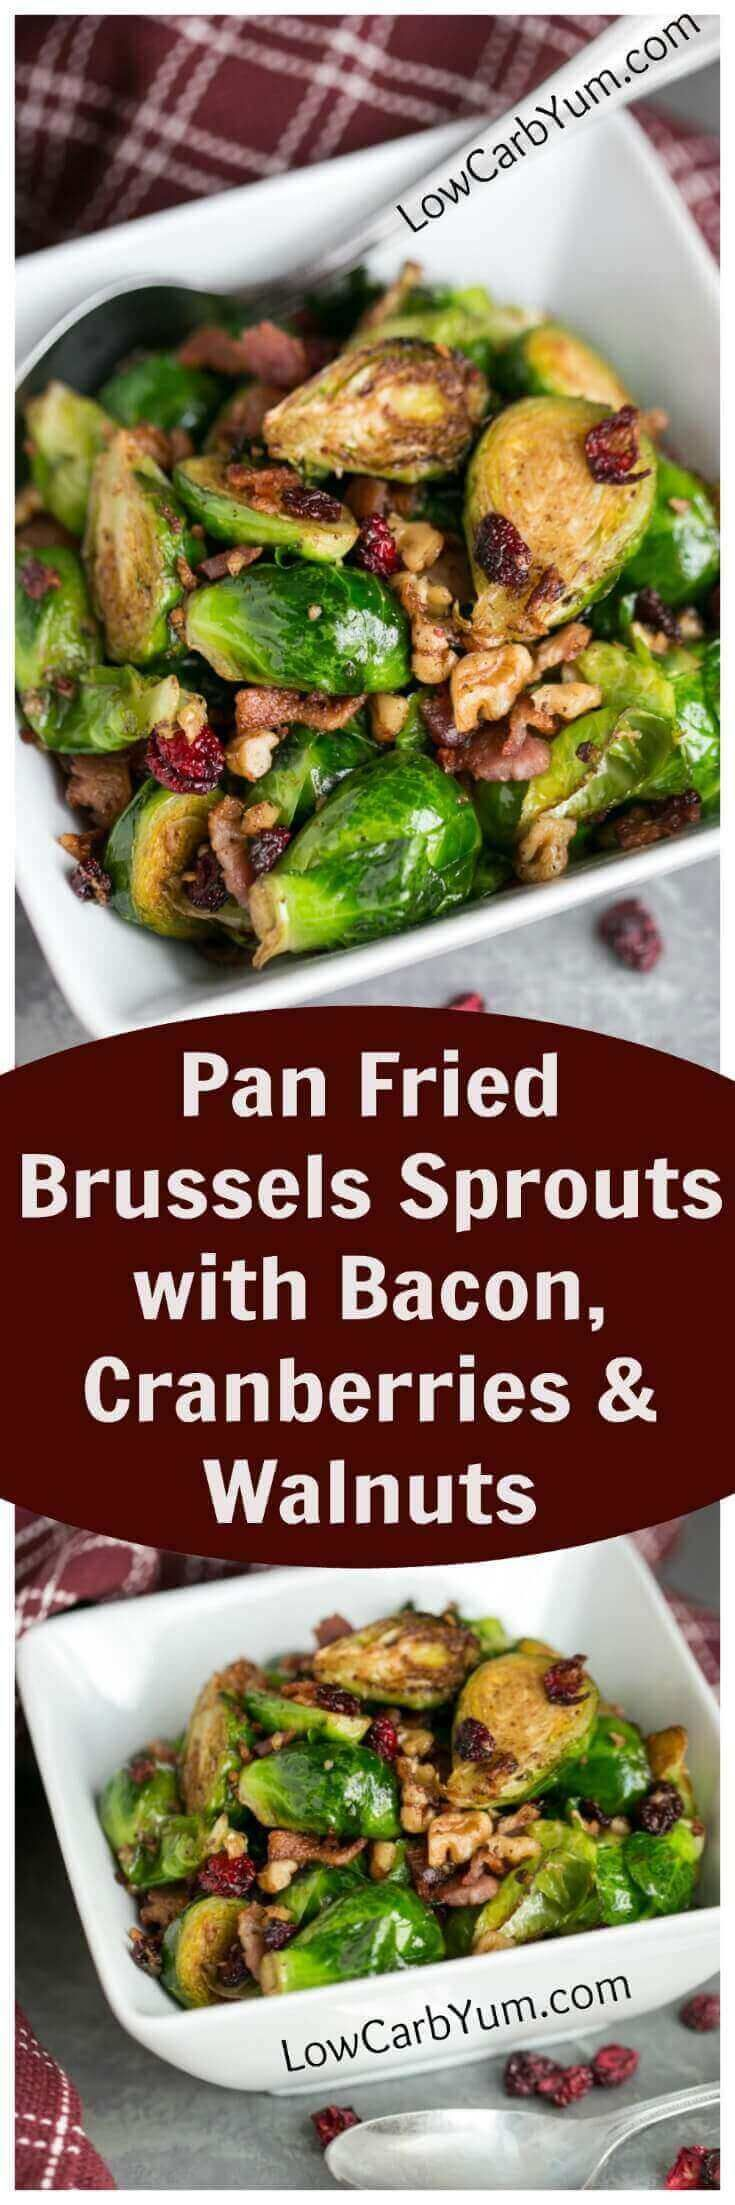 You'll win them over with these delicious pan fried Brussels sprouts with bacon and cranberries. Adding chopped walnuts makes it even better! | LowCarbYum.com